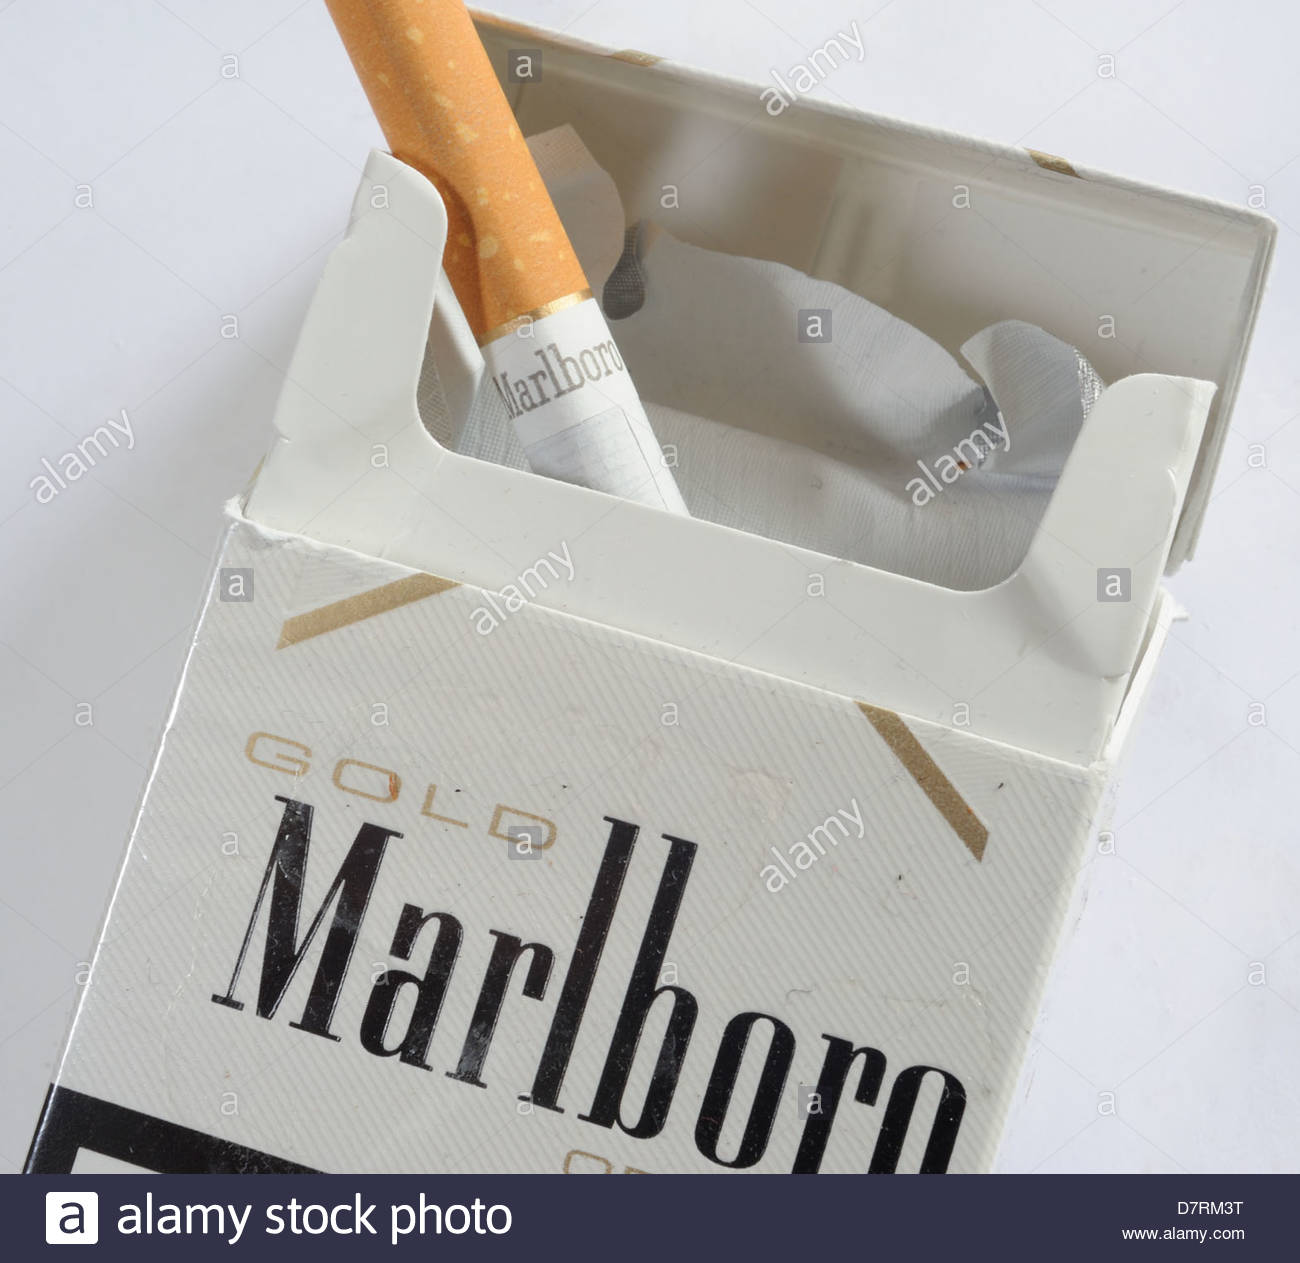 Marlboro Stock Photos & Marlboro Stock Images - Alamy